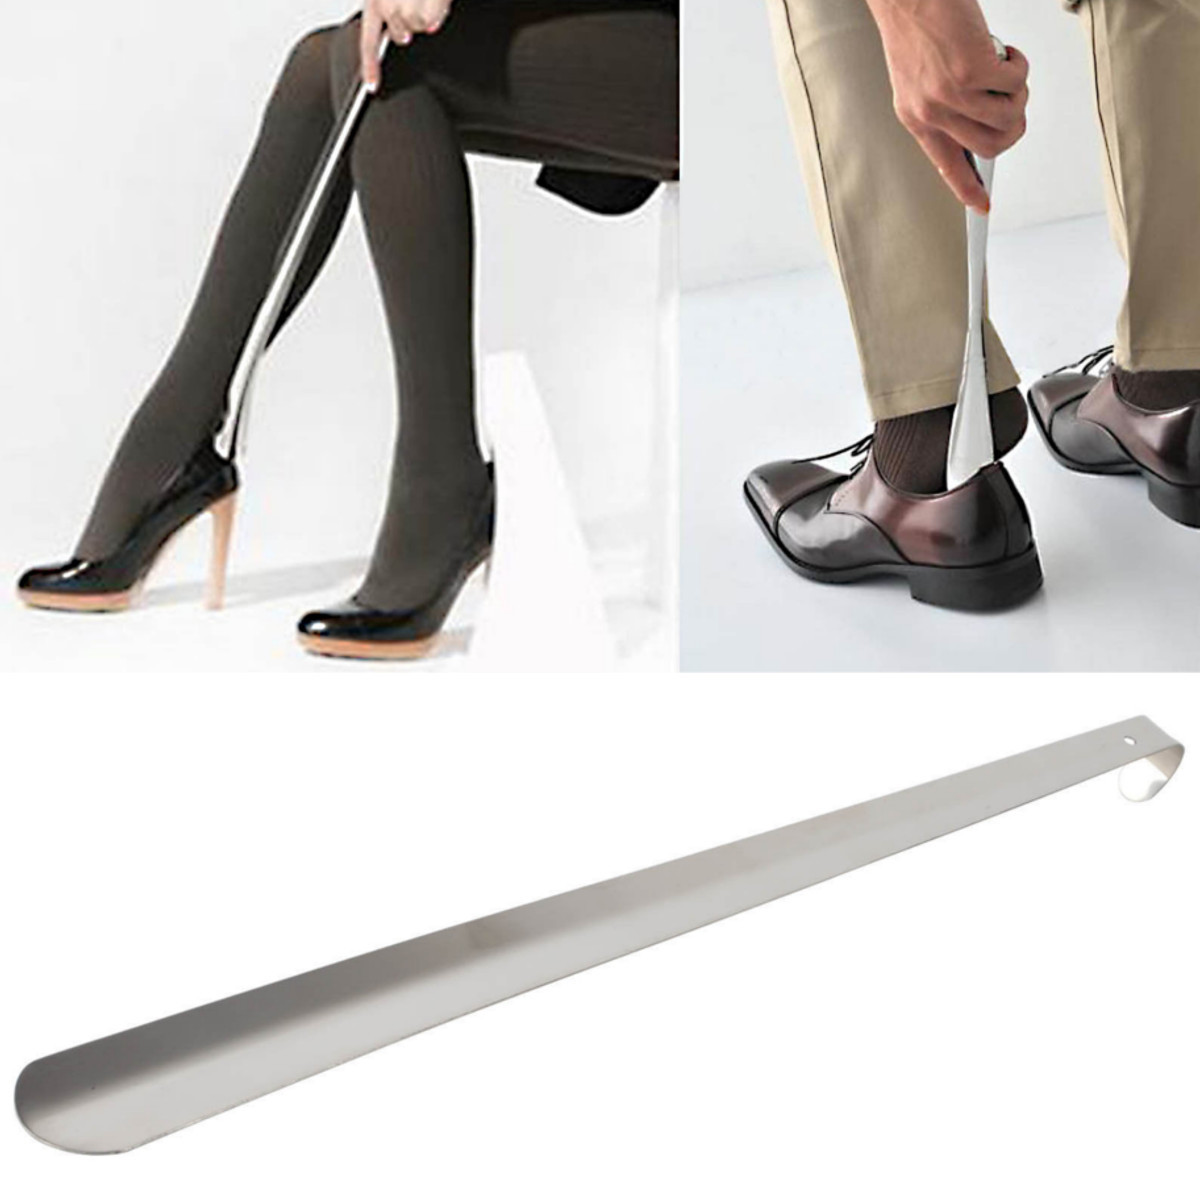 4a5723e8a52 On Clearanace 20   Professional Stainless Steel Extra Long Handle Shoe Horn  Lifter Flexible Shoehorn Silver Metal Shoes Remover Shoehorn for Women Men  Dress ...